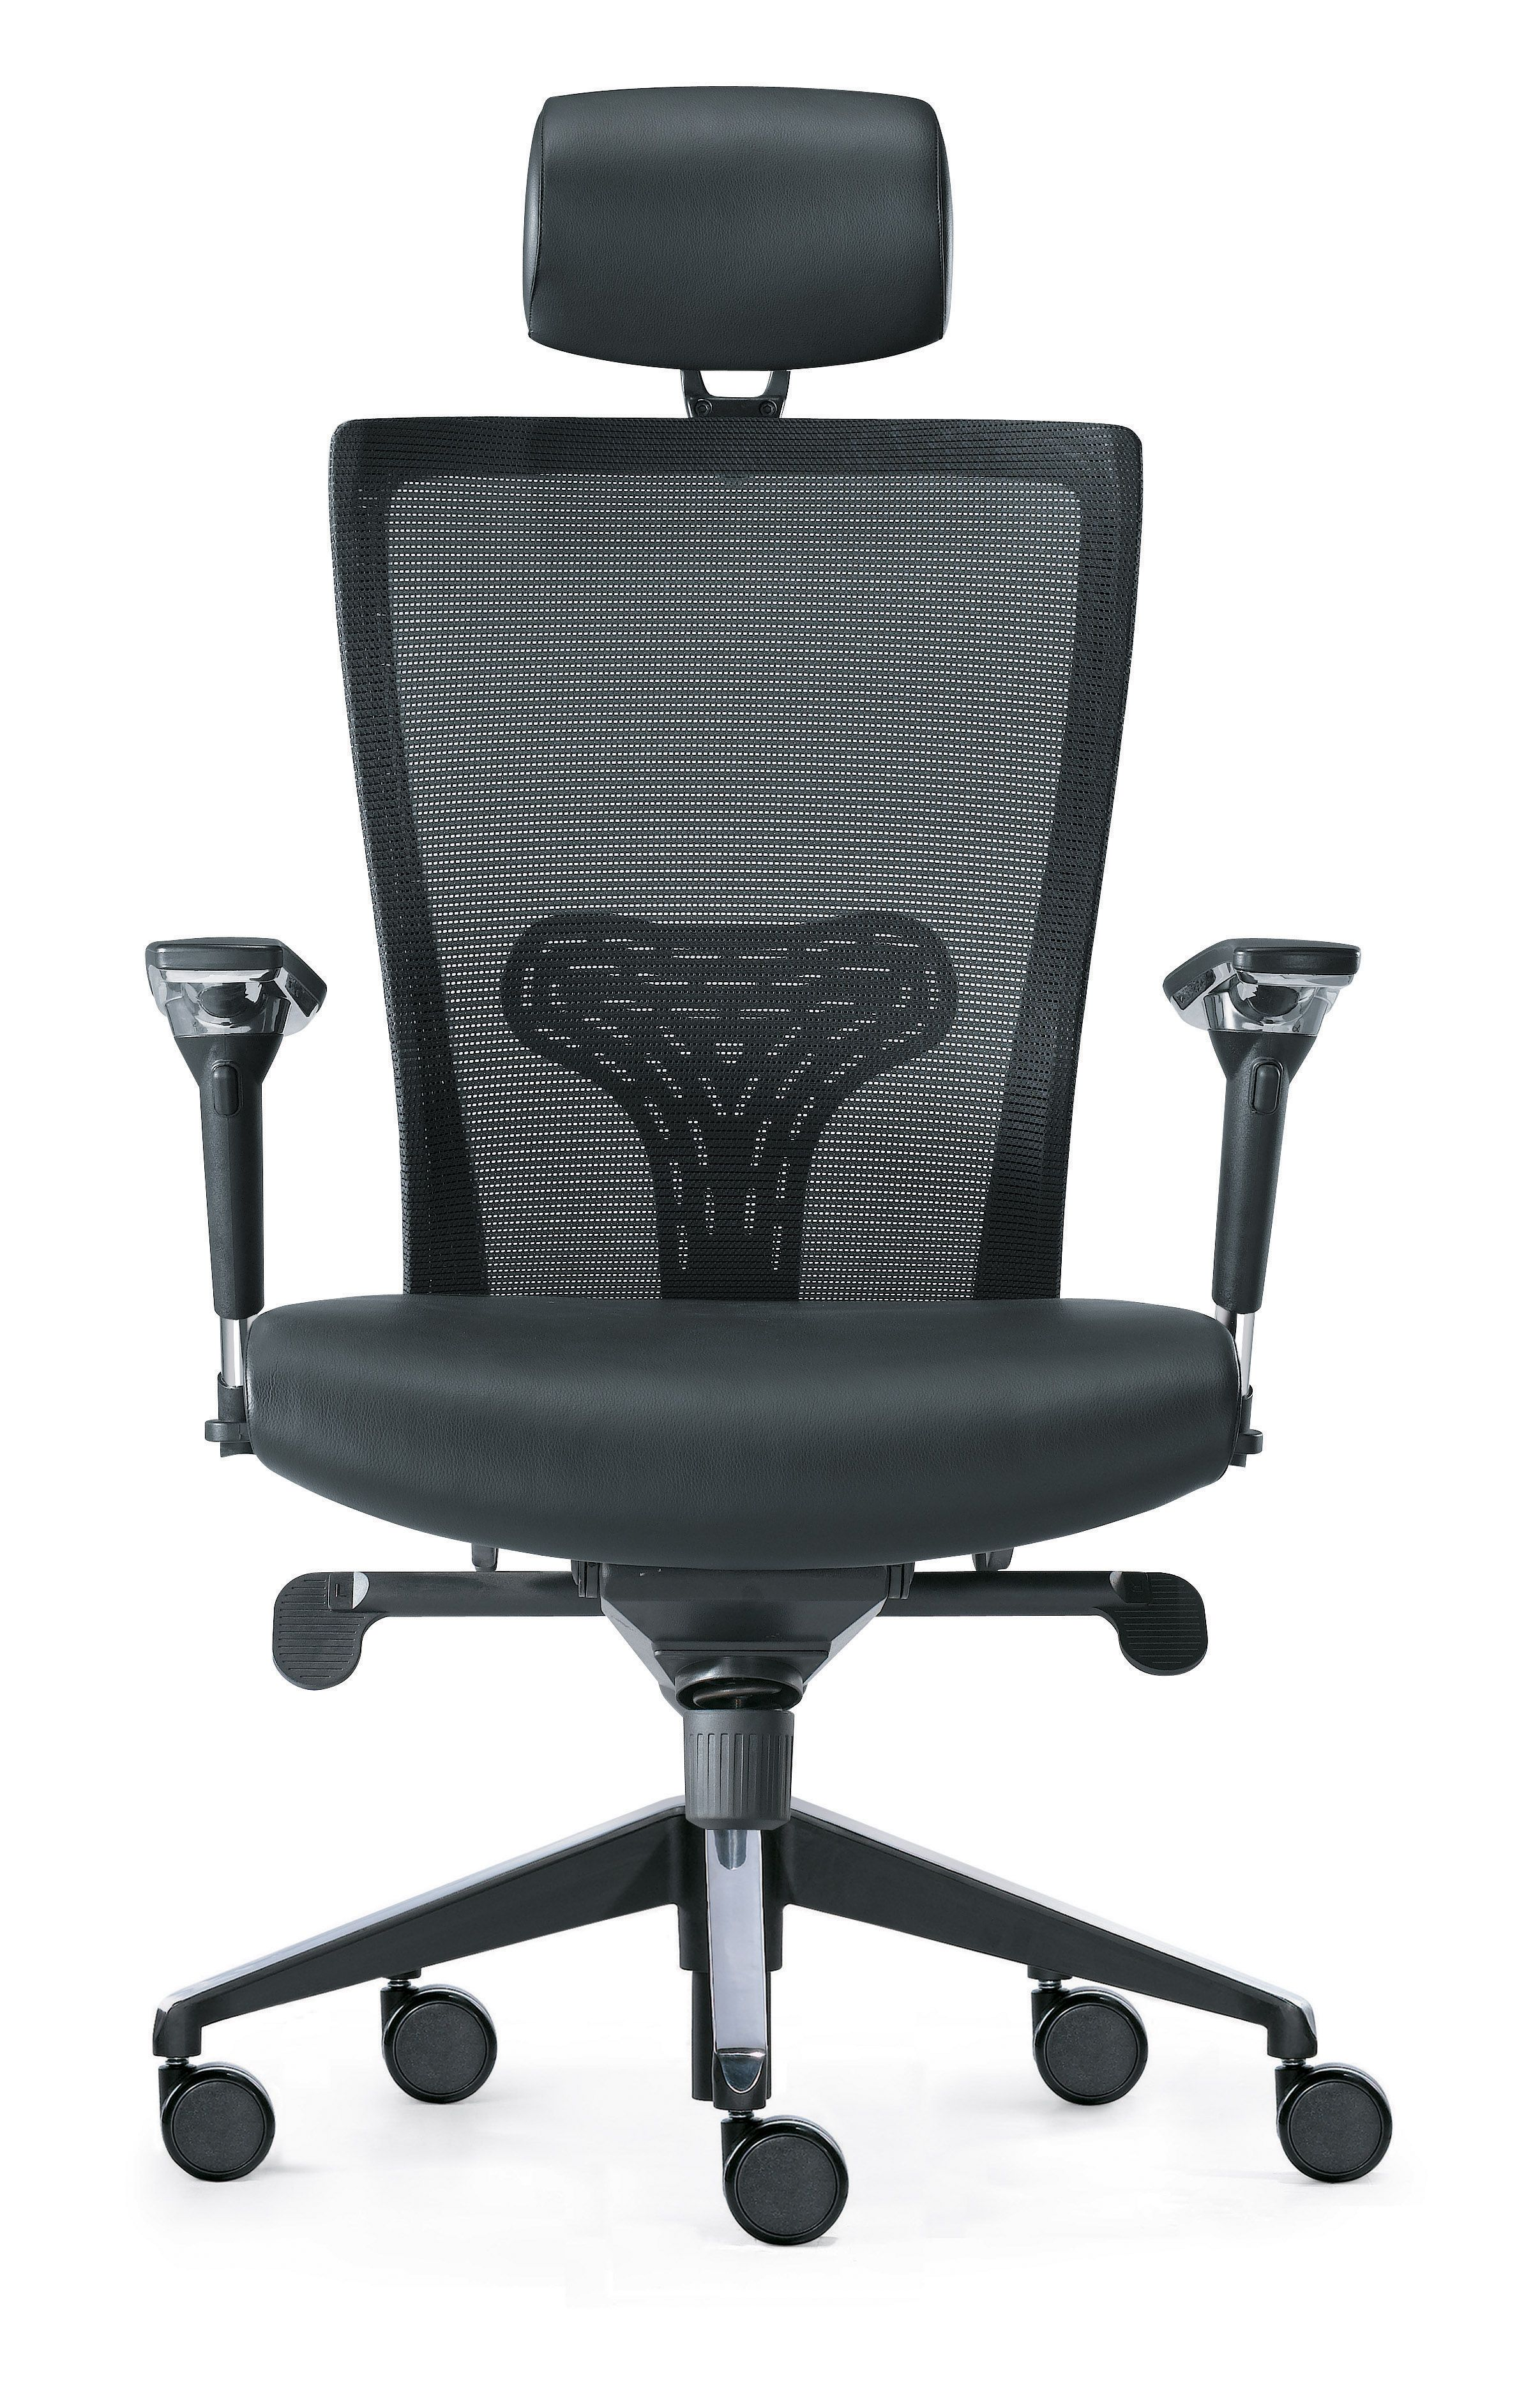 ergonomic chair knee rest dining room chairs with caning mojo kaizen full tilt adjustable arms and head hi style polished cast aluminum black two tone base a great office work